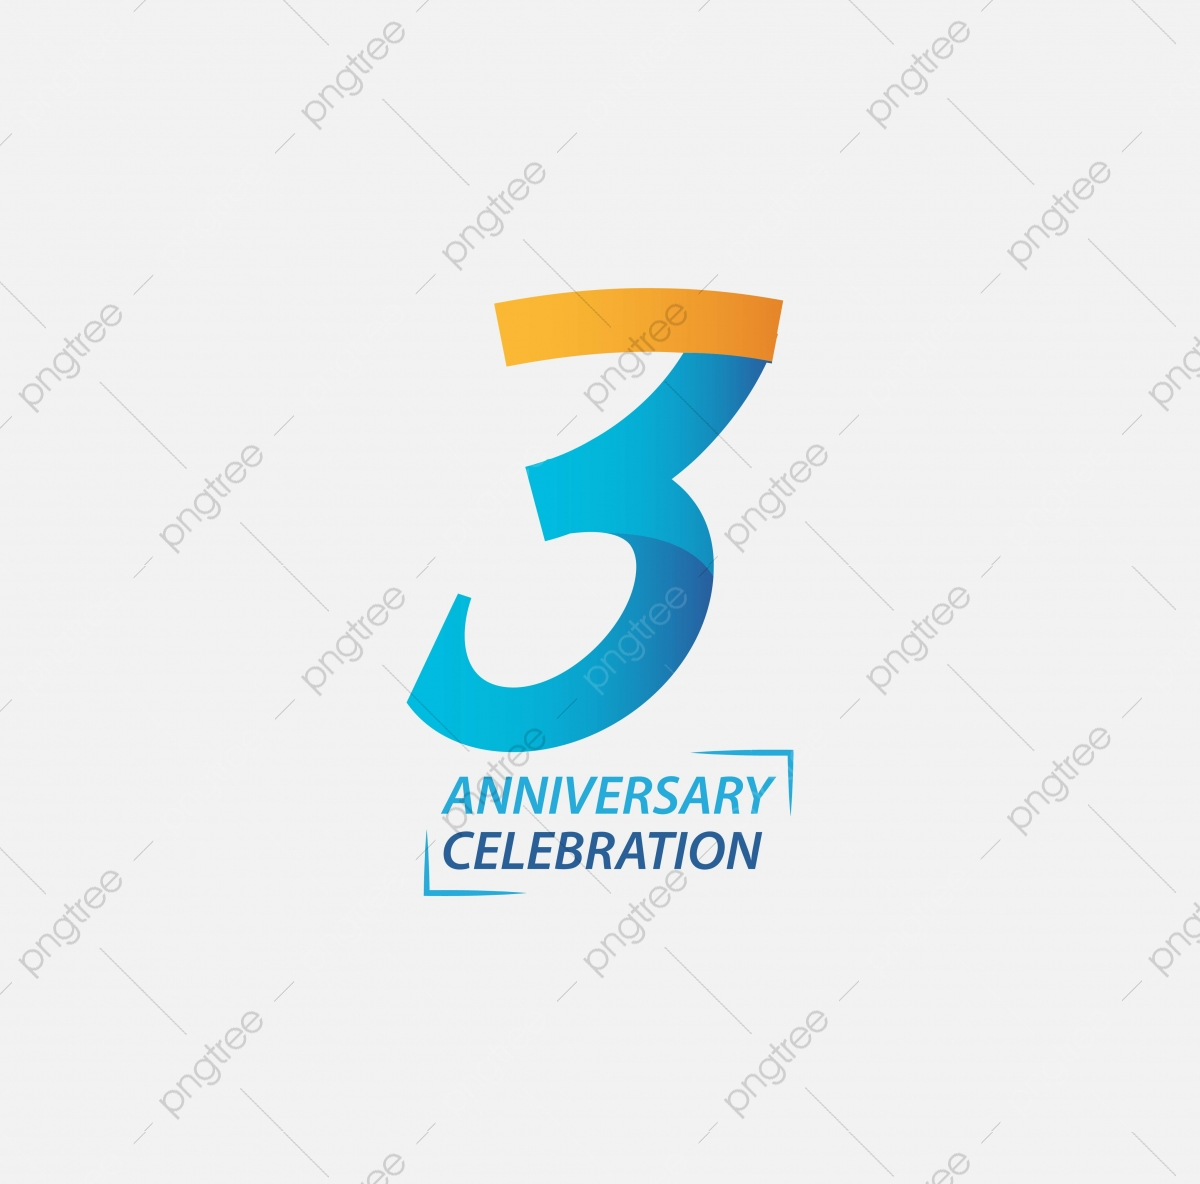 3 Anniversary Png Images Vector And Psd Files Free Download On Pngtree